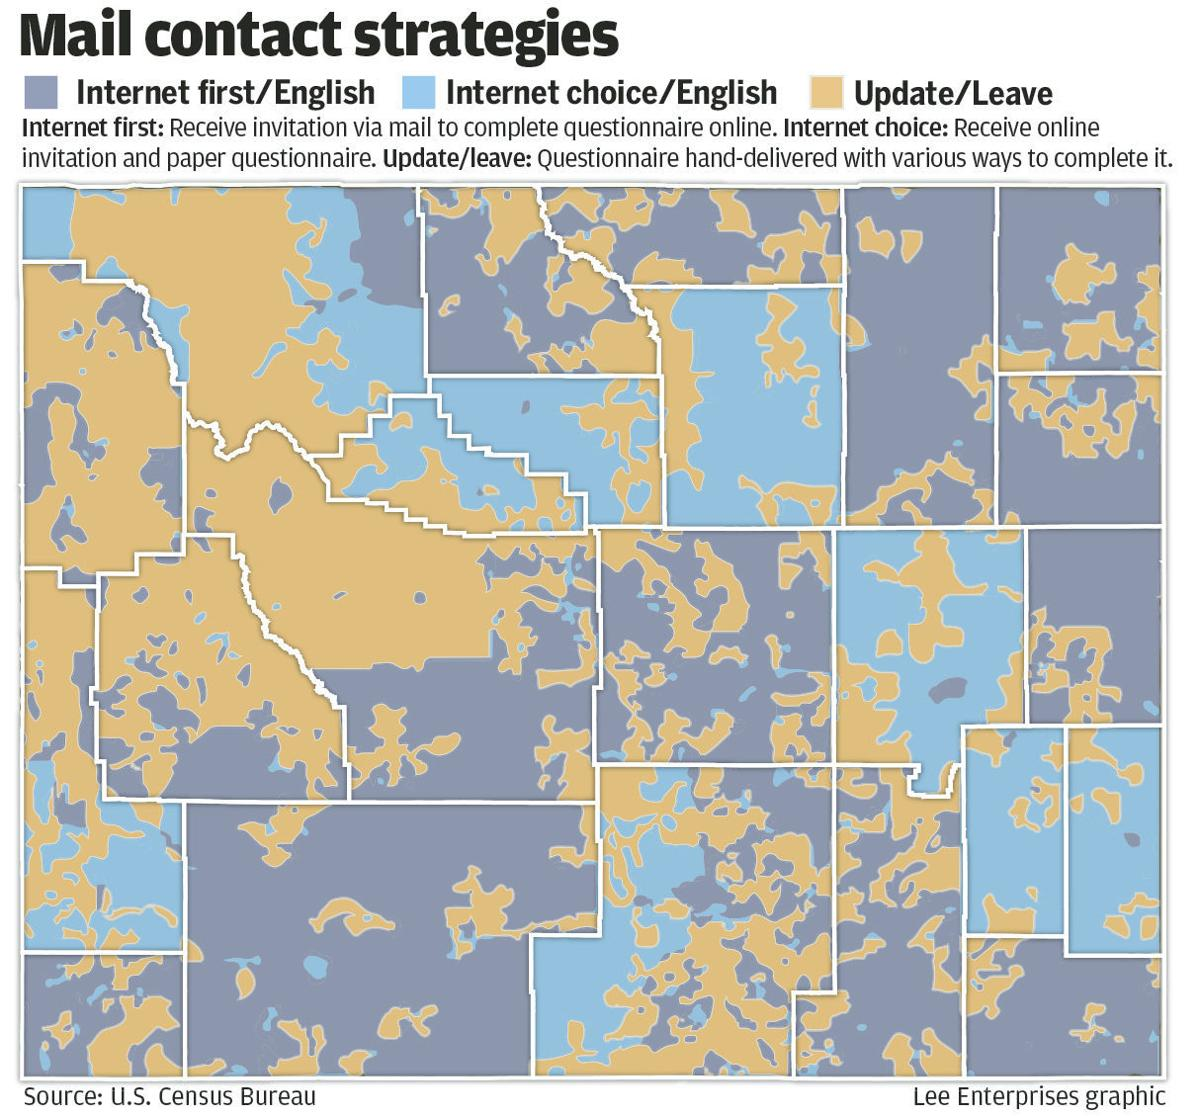 Mail contact strategies copy